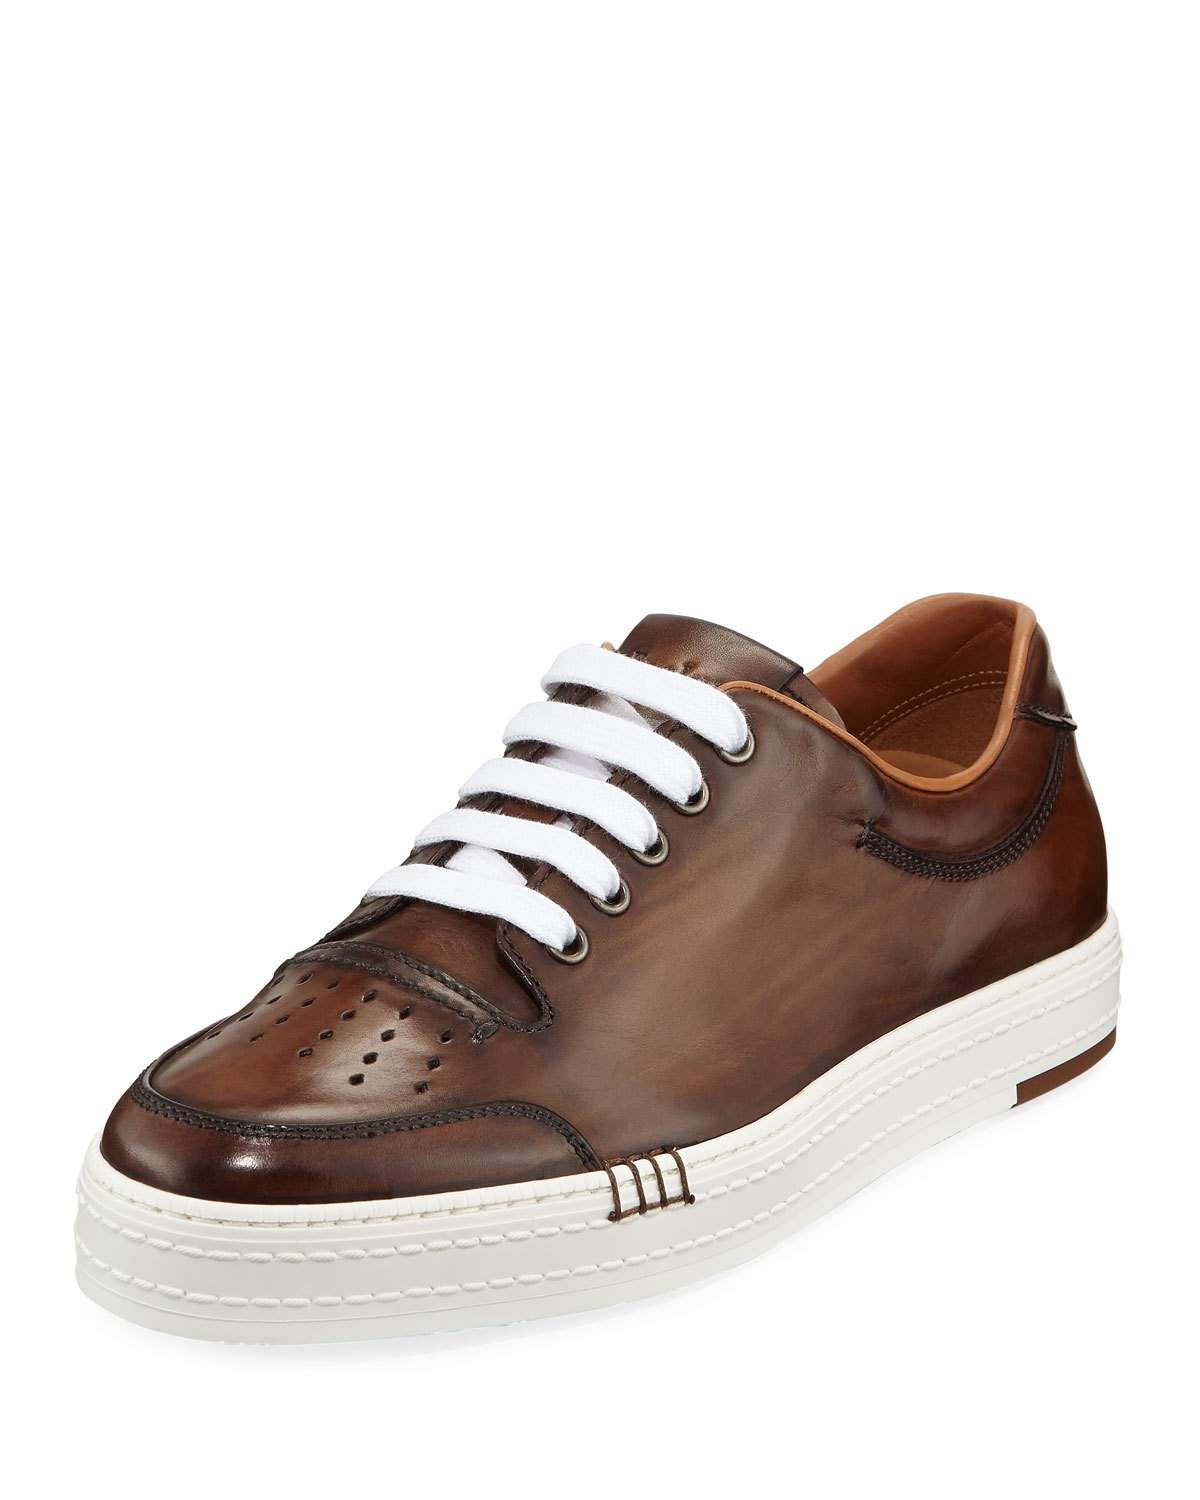 75af5b653de BERLUTI MEN S PLAYTIME LOW-TOP SNEAKERS.  berluti  shoes